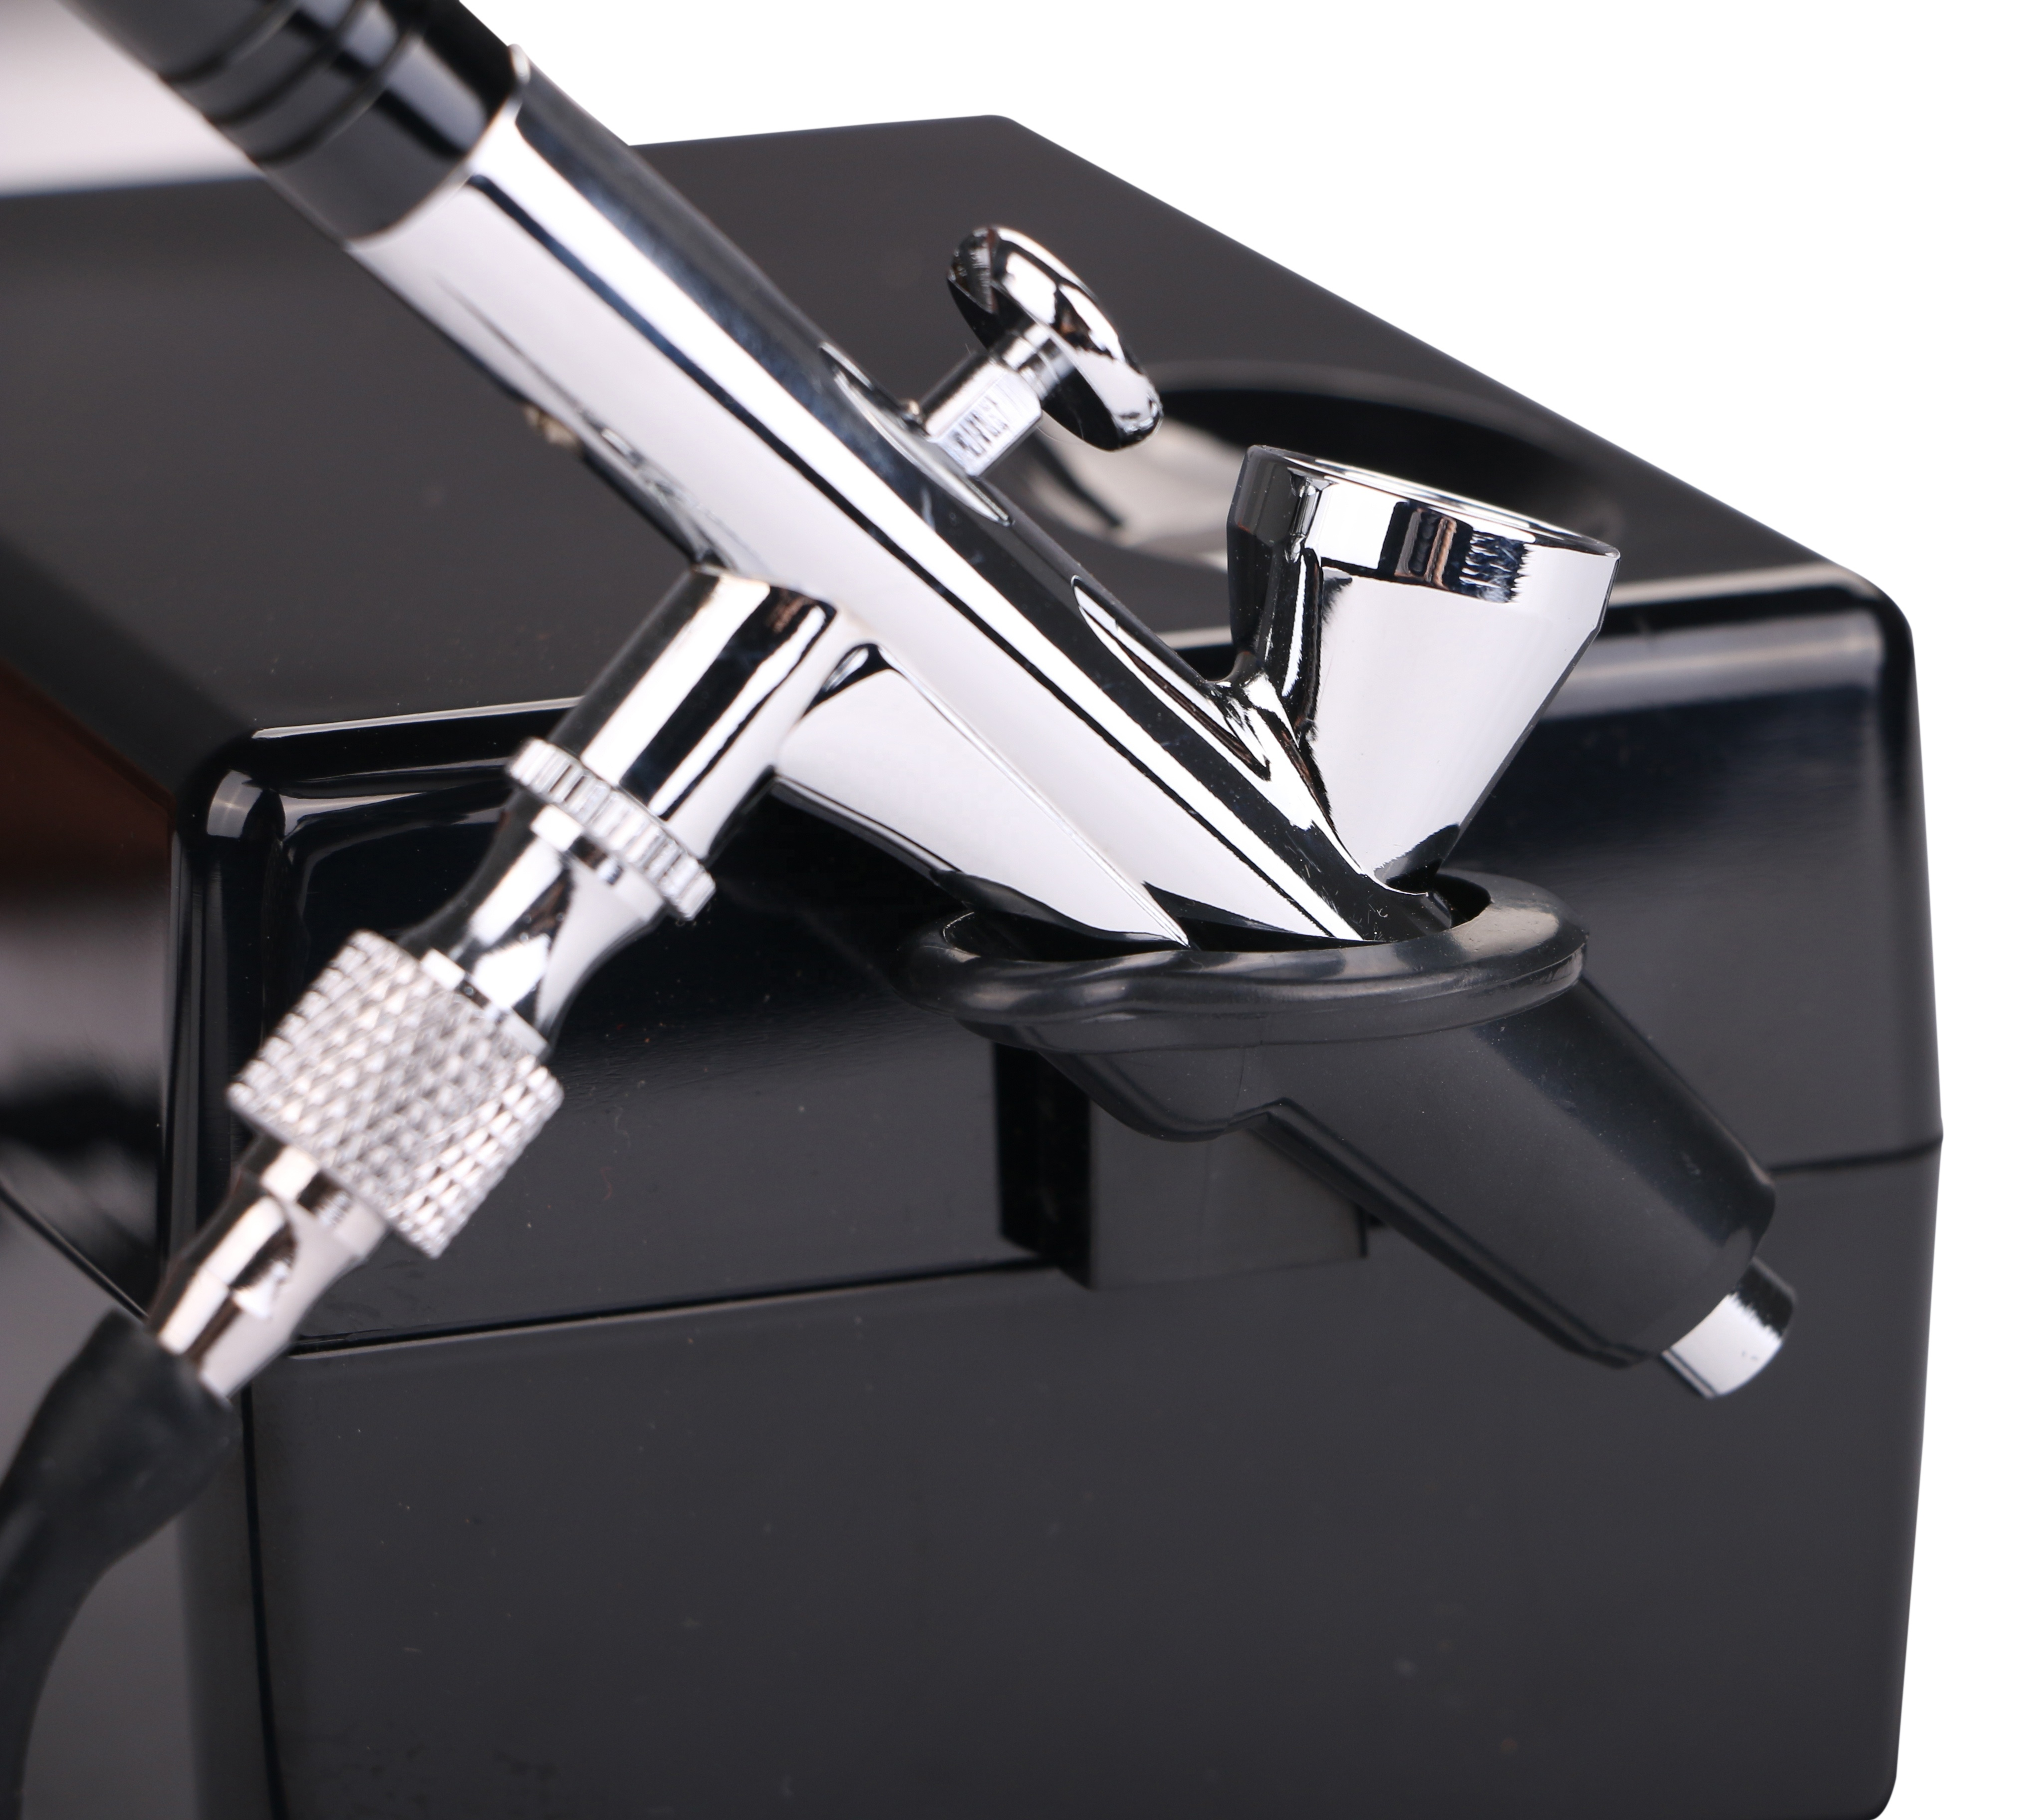 Art of Air Professional Airbrush Cosmetic Makeup System/Fair  For Face Makeup Airbrush Tools